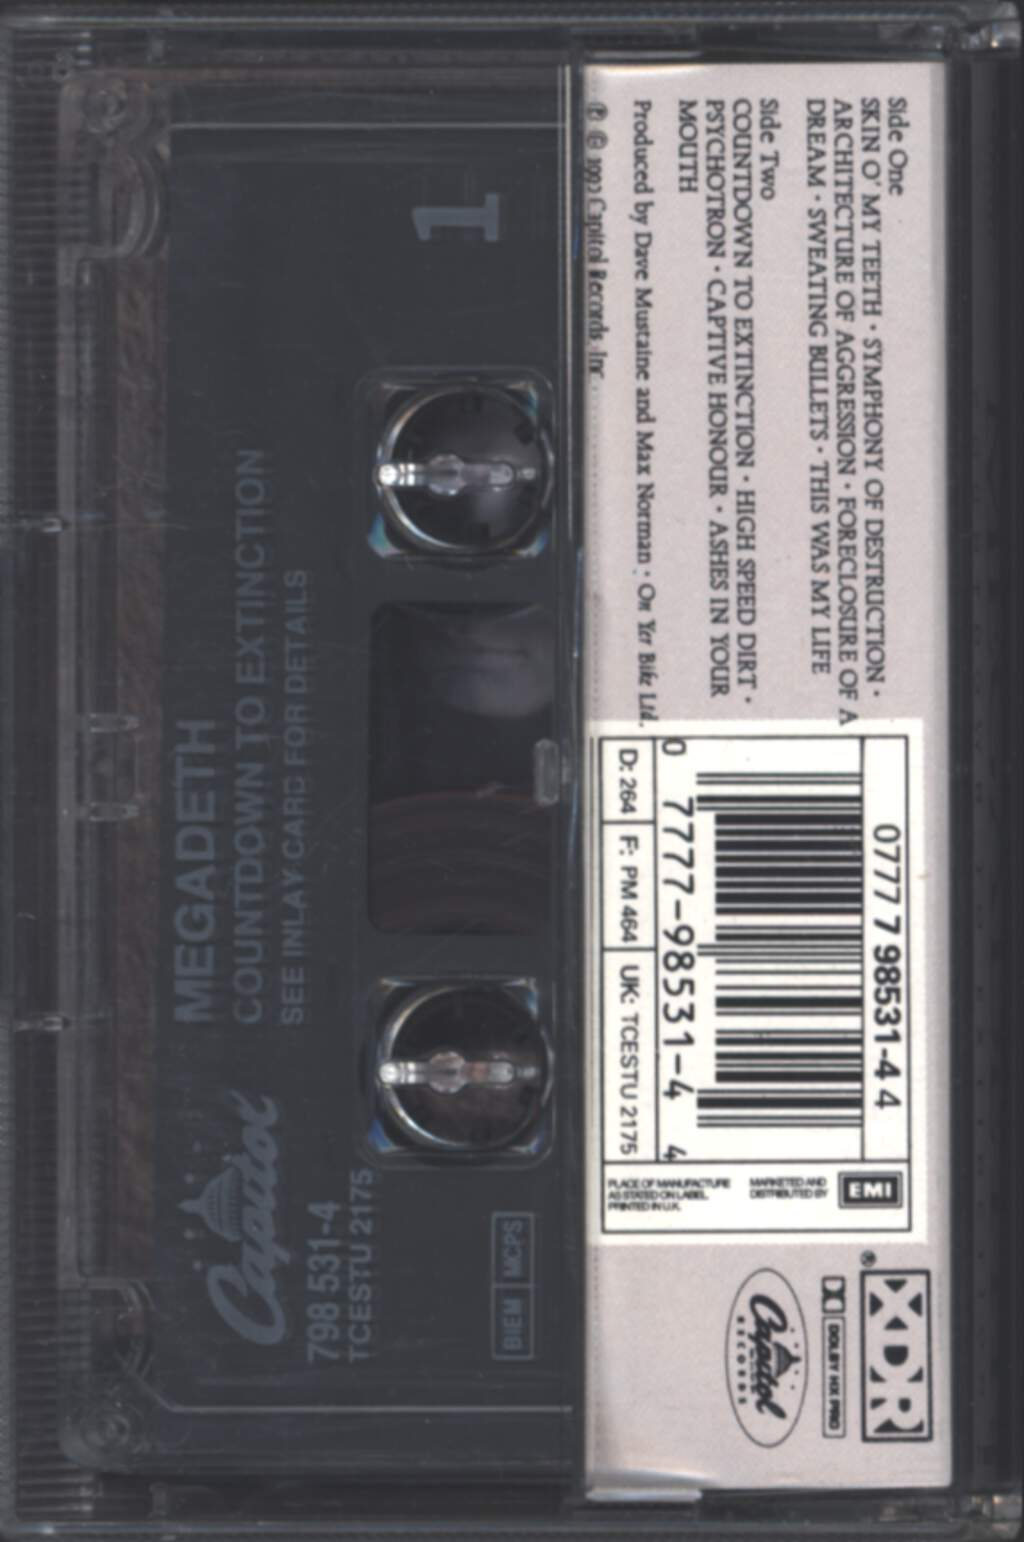 Megadeth: Countdown To Extinction, Compact Cassette